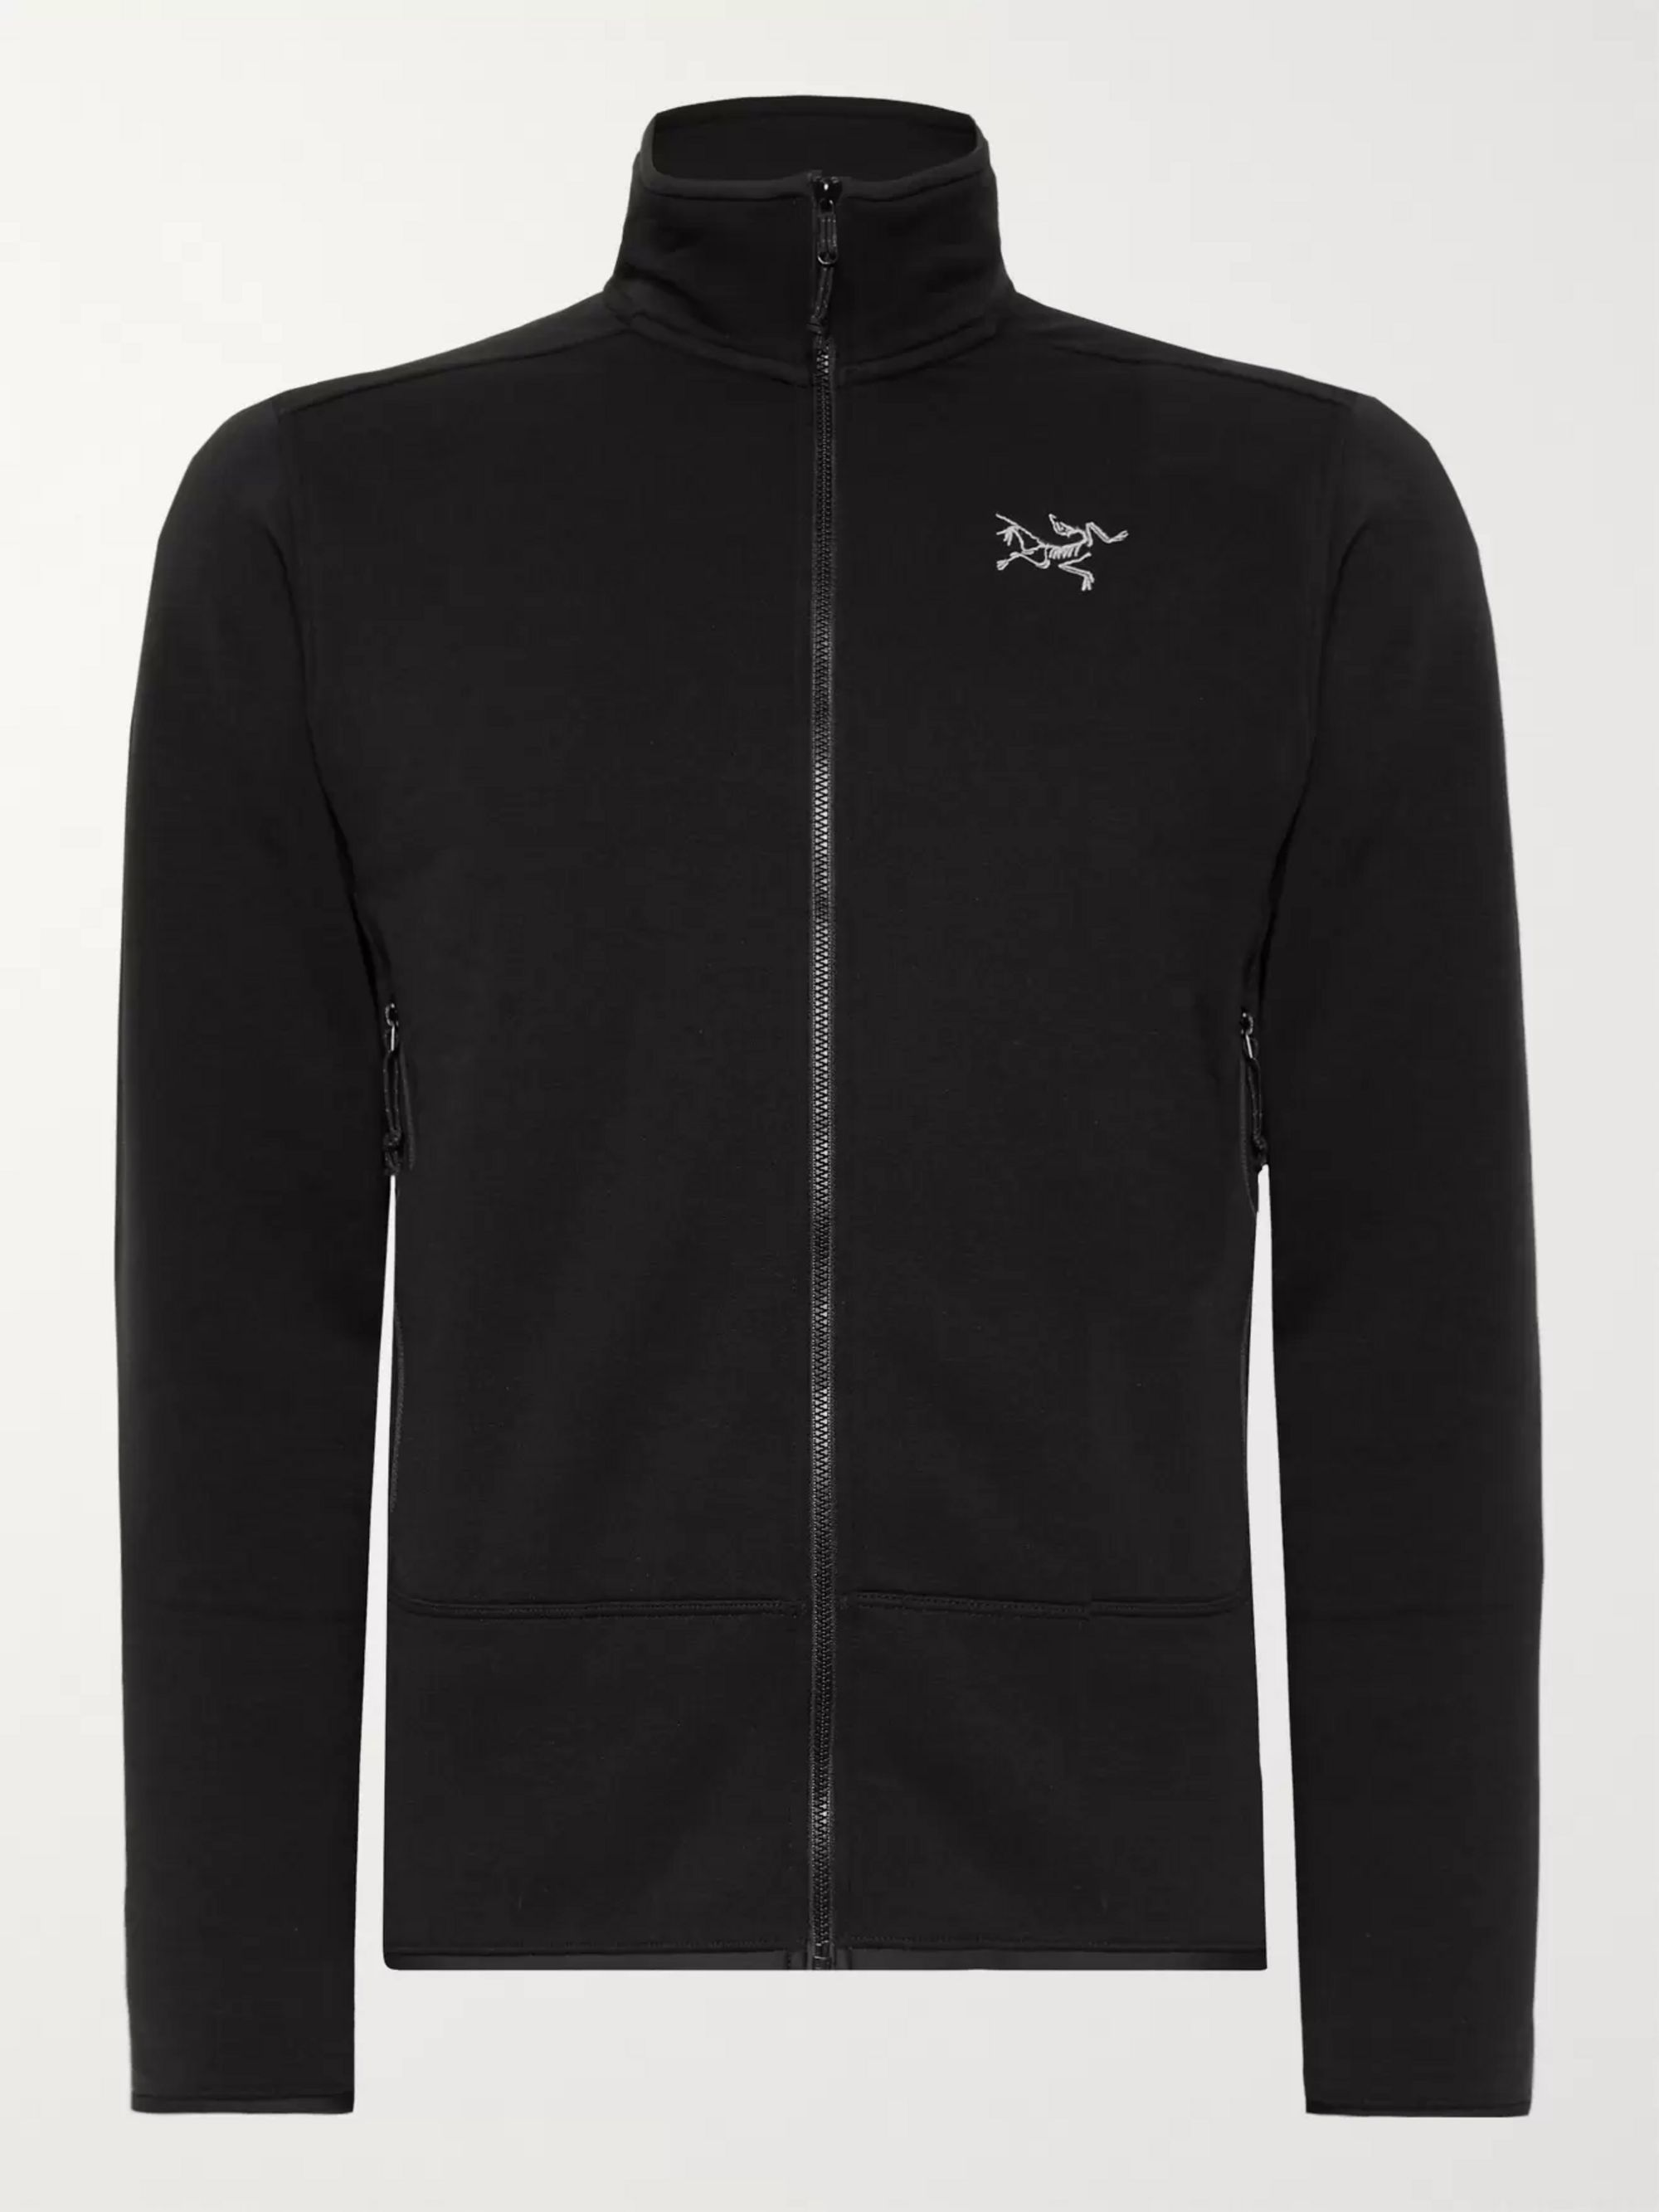 Arc'teryx Kyanite Slim-Fit Polartec Jersey Zip-Up Base Layer